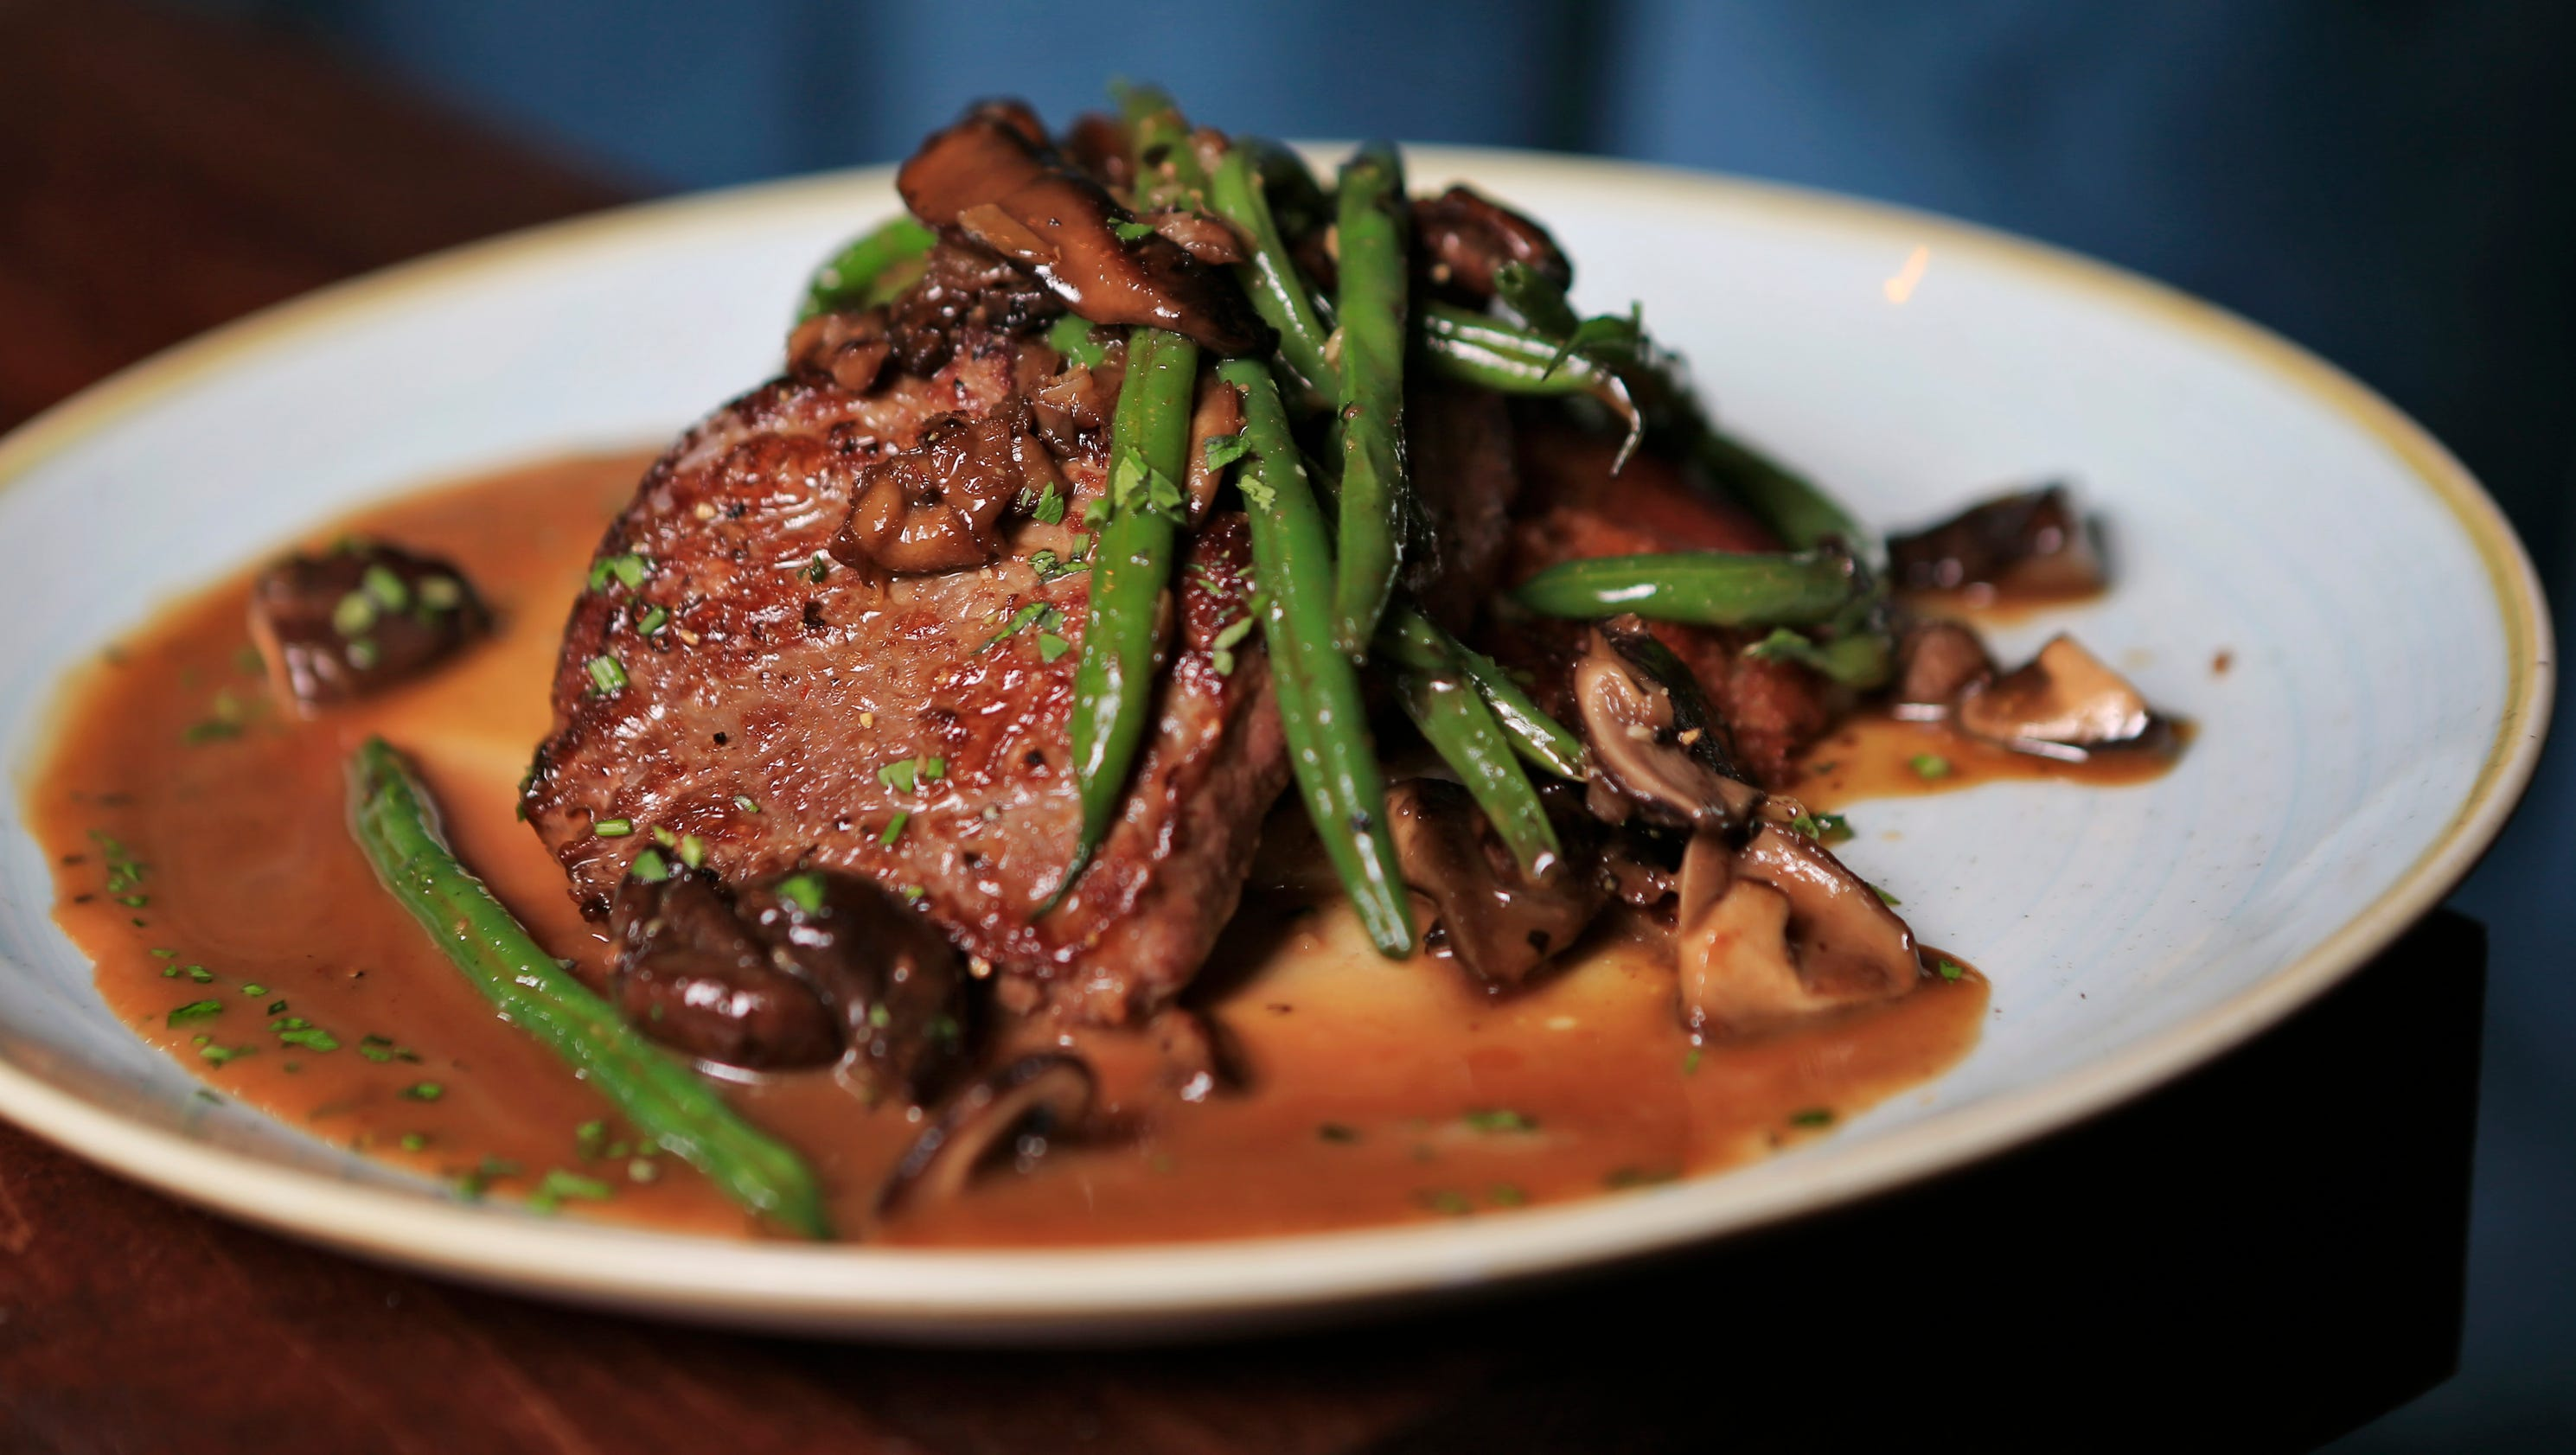 Food network says le moo steakhouse in louisville sizzles for 2b cuisine epsom downs